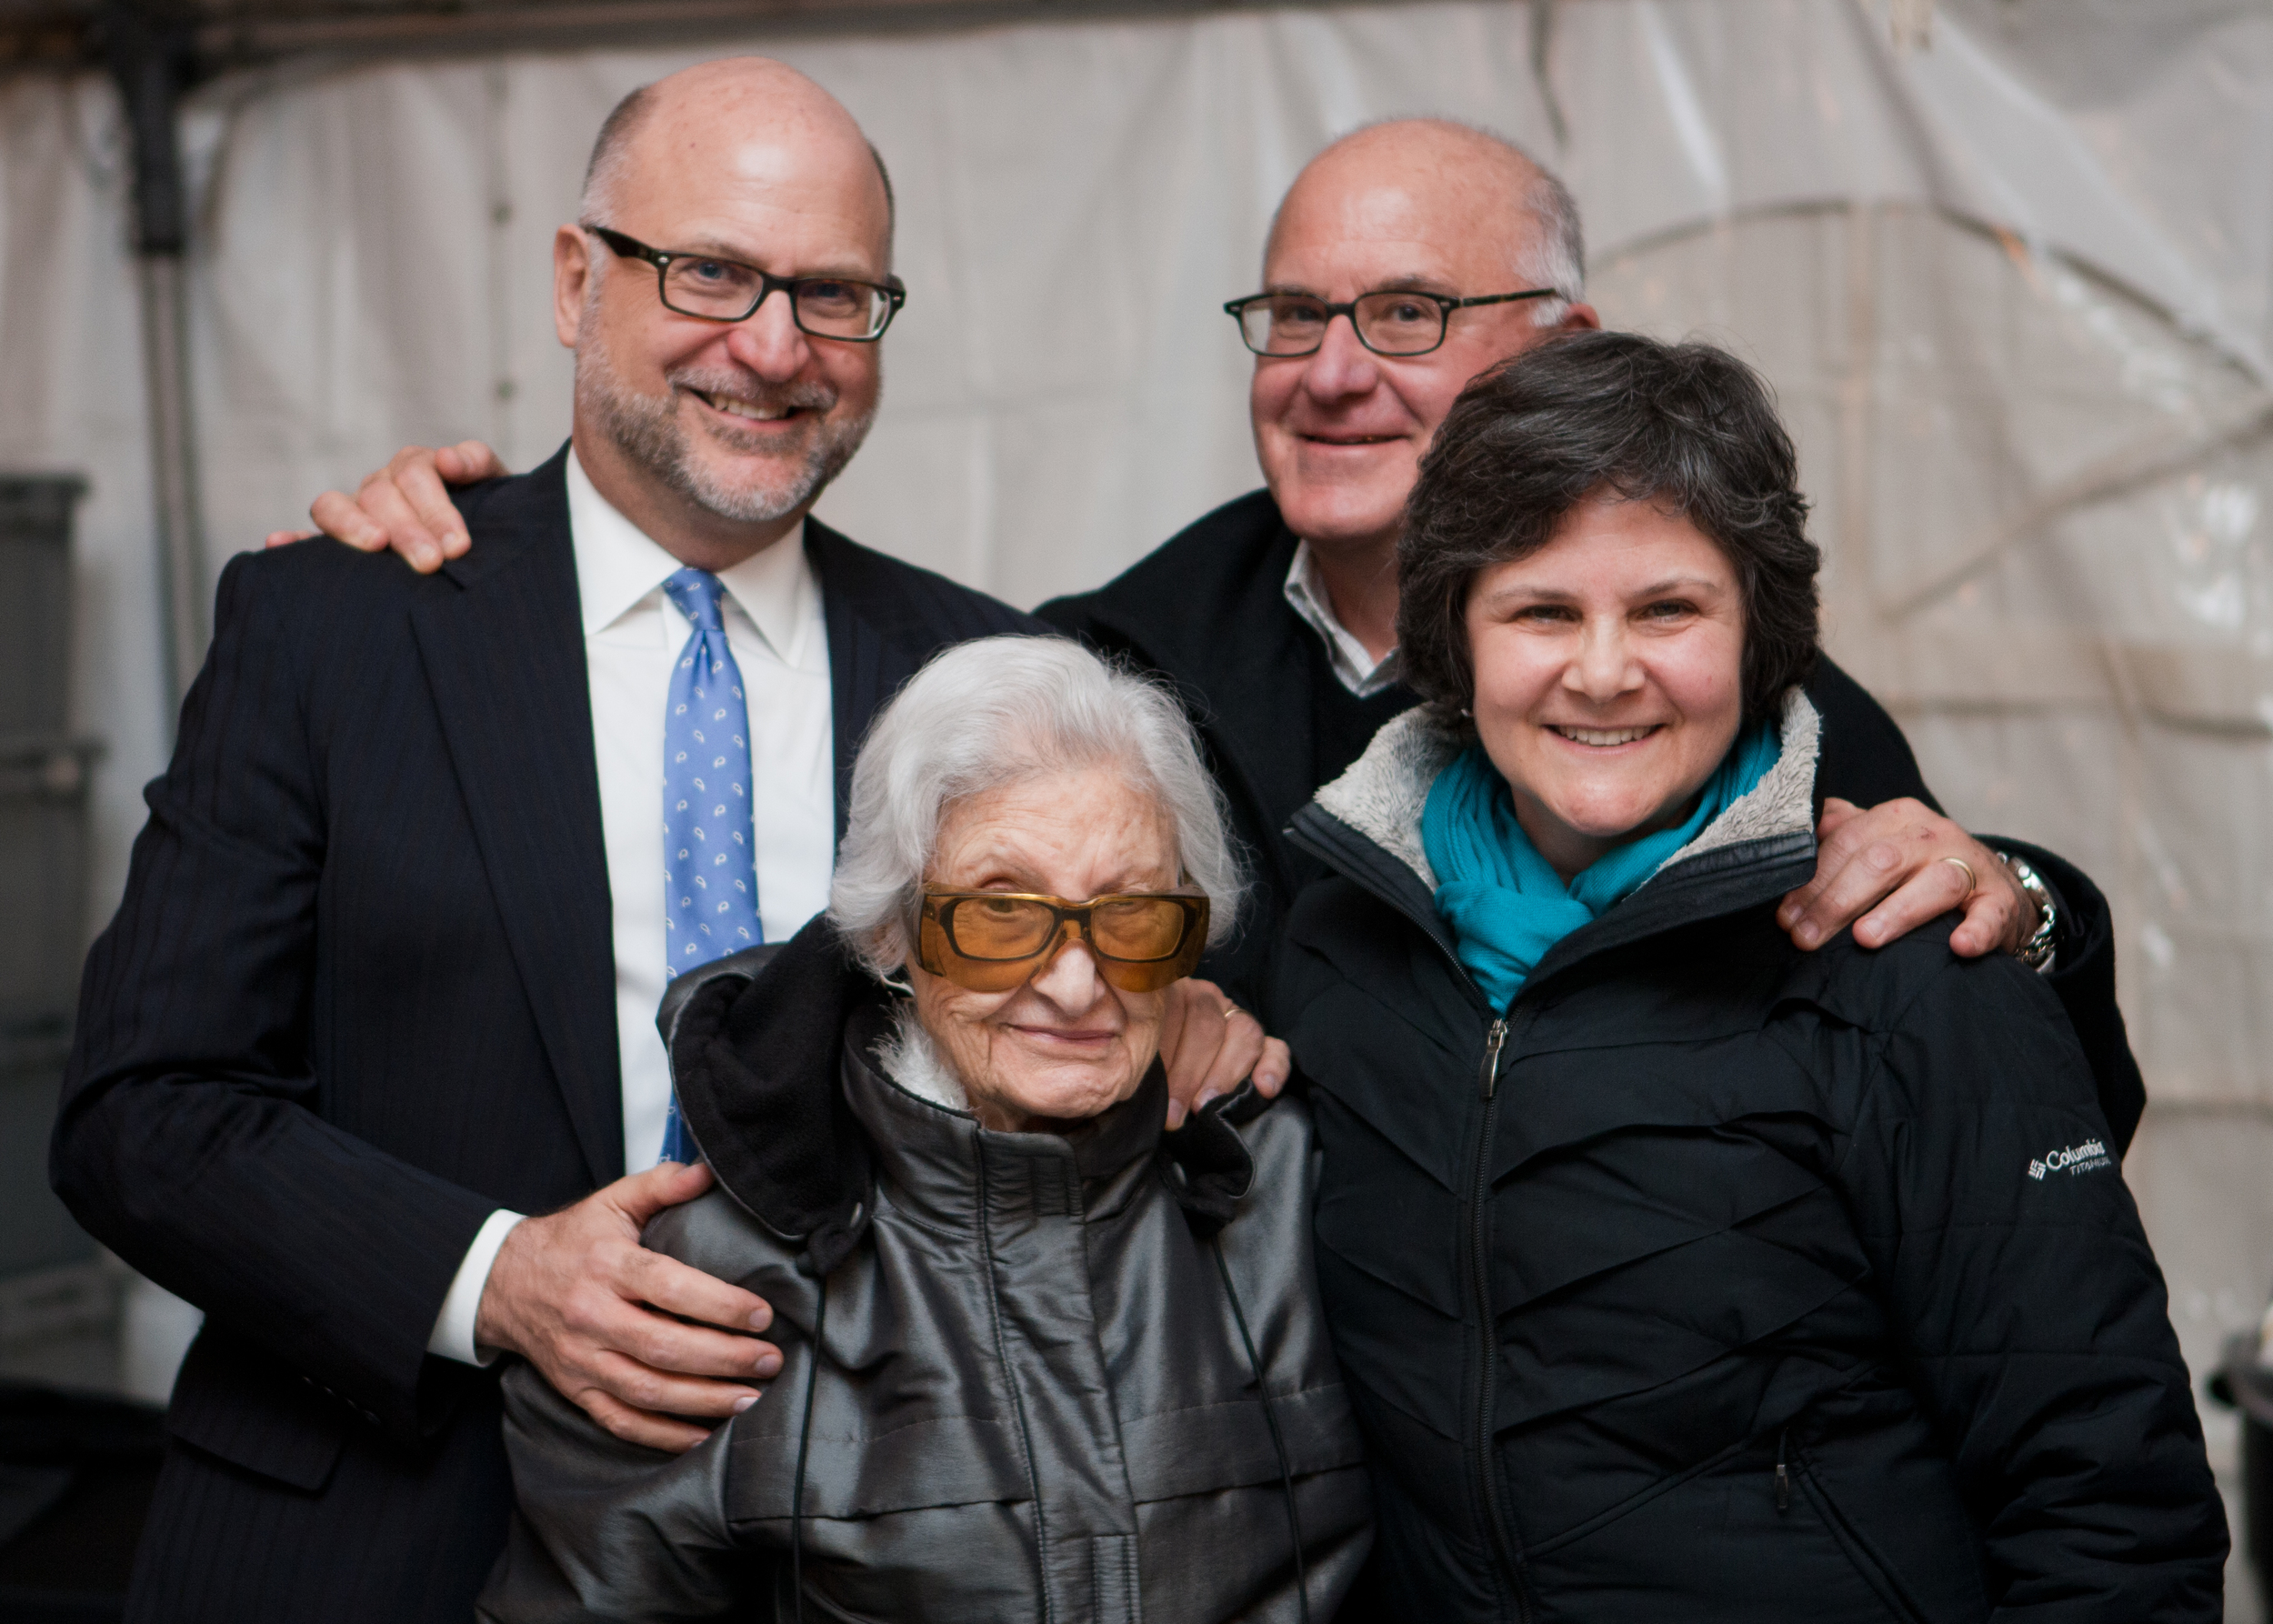 Mark, Chris, Co-founder Amelia Wilhelm, Cynthia (pictured left to right)with their mother after announcing the donation on Saturday, April 30th.